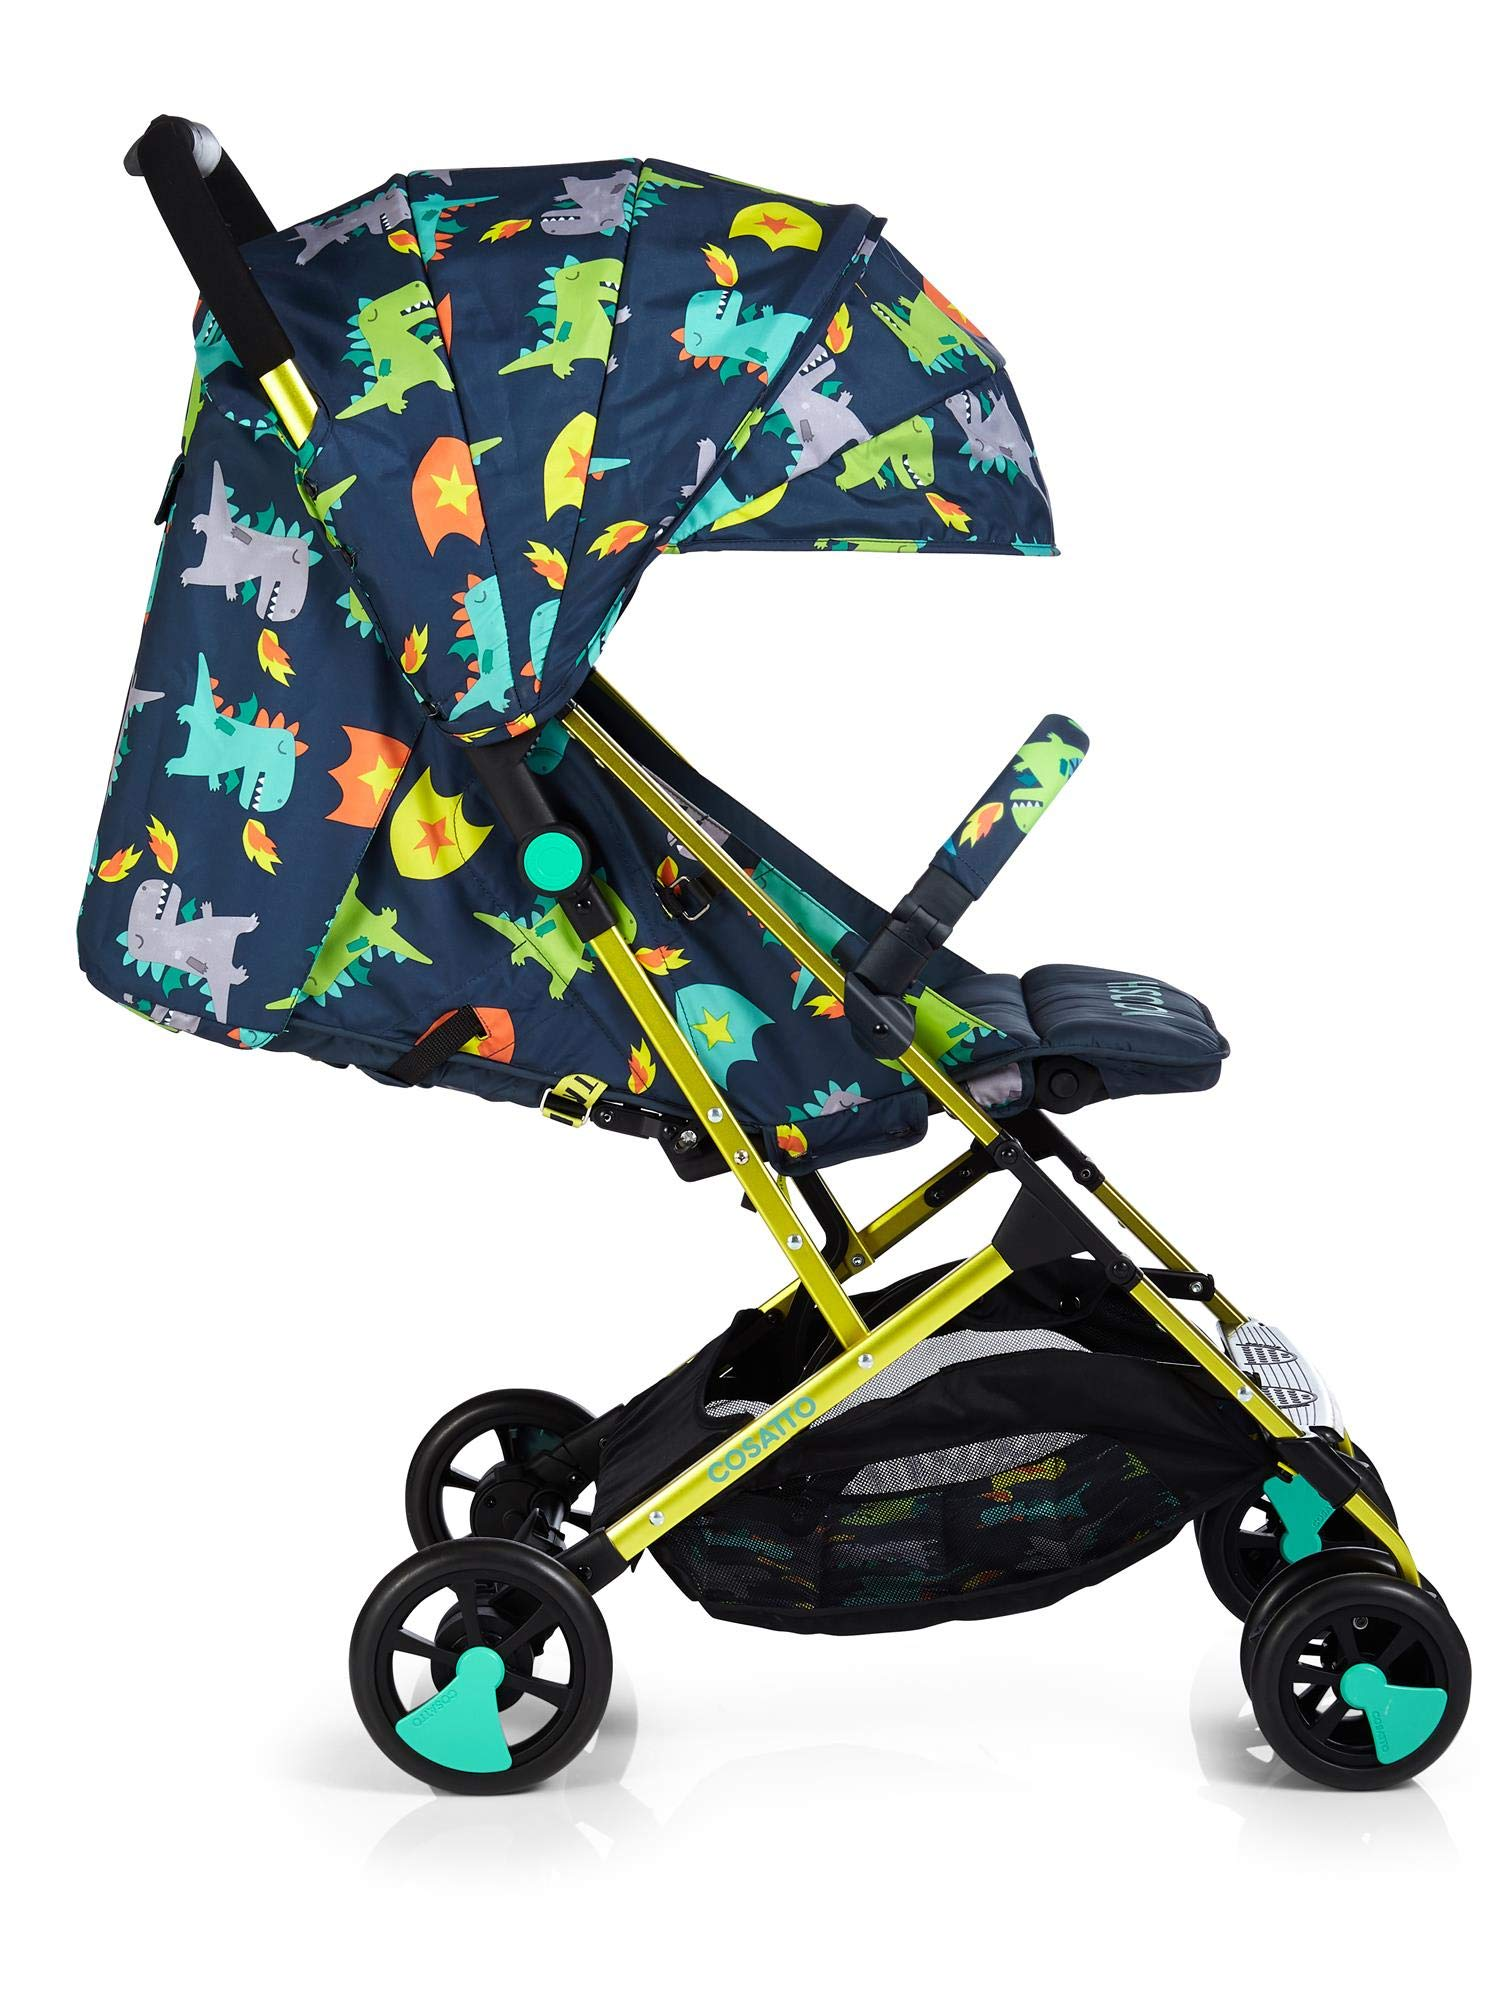 Cosatto CT4253 Woosh 2 Dragon Kingdom 7.2 kg Cosatto Suitable from birth to max weight of 25kg, lets your toddler use it for even longer Lightweight, sturdy aluminium frame New-born recline 1